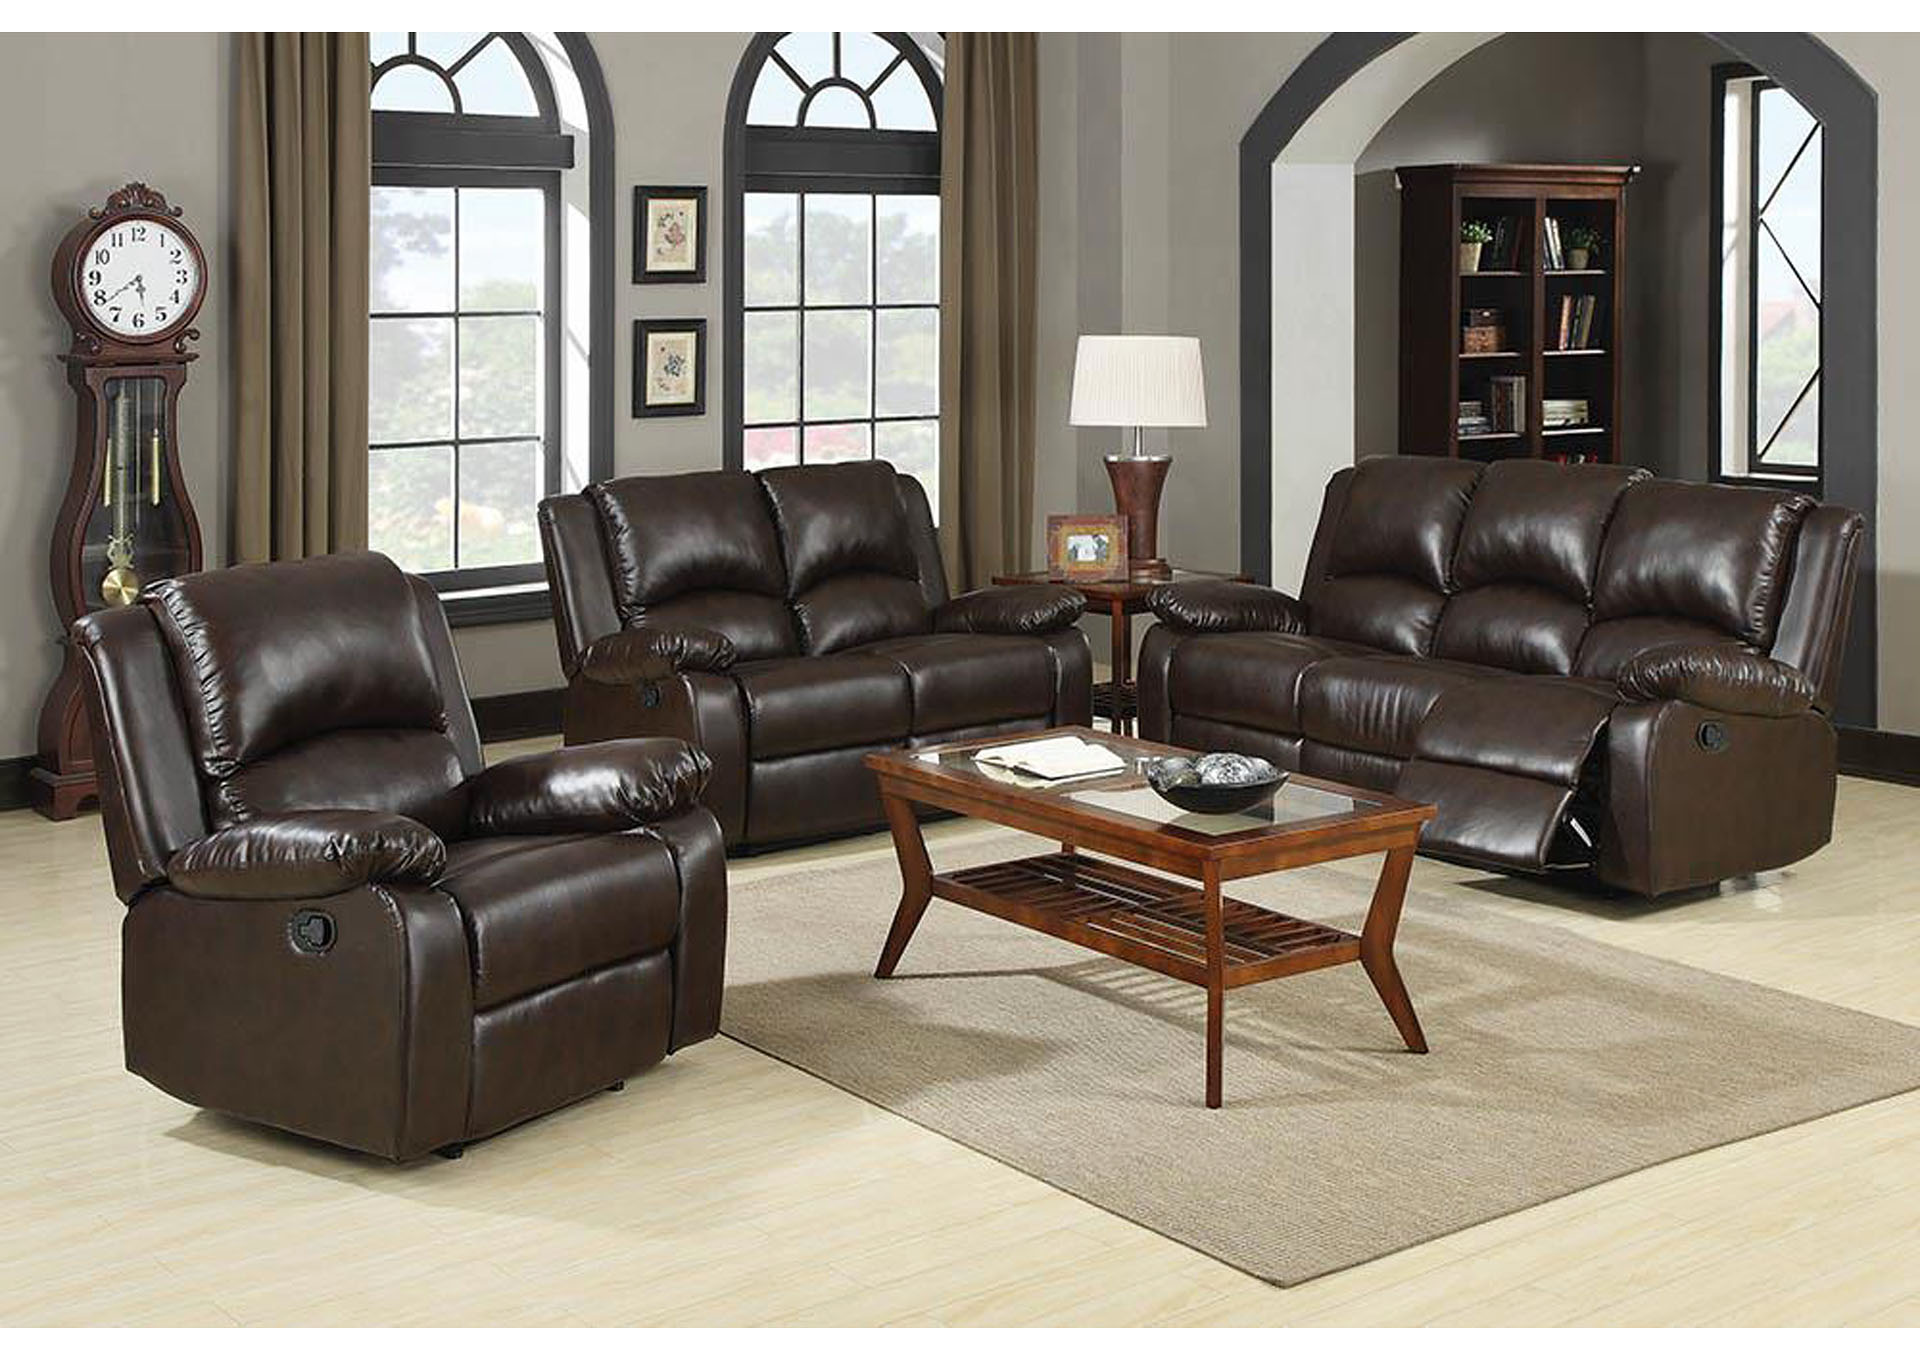 Tallahassee Discount Furniture Tallahassee Fl Boston Brown Double Gliding Love Seat W Console